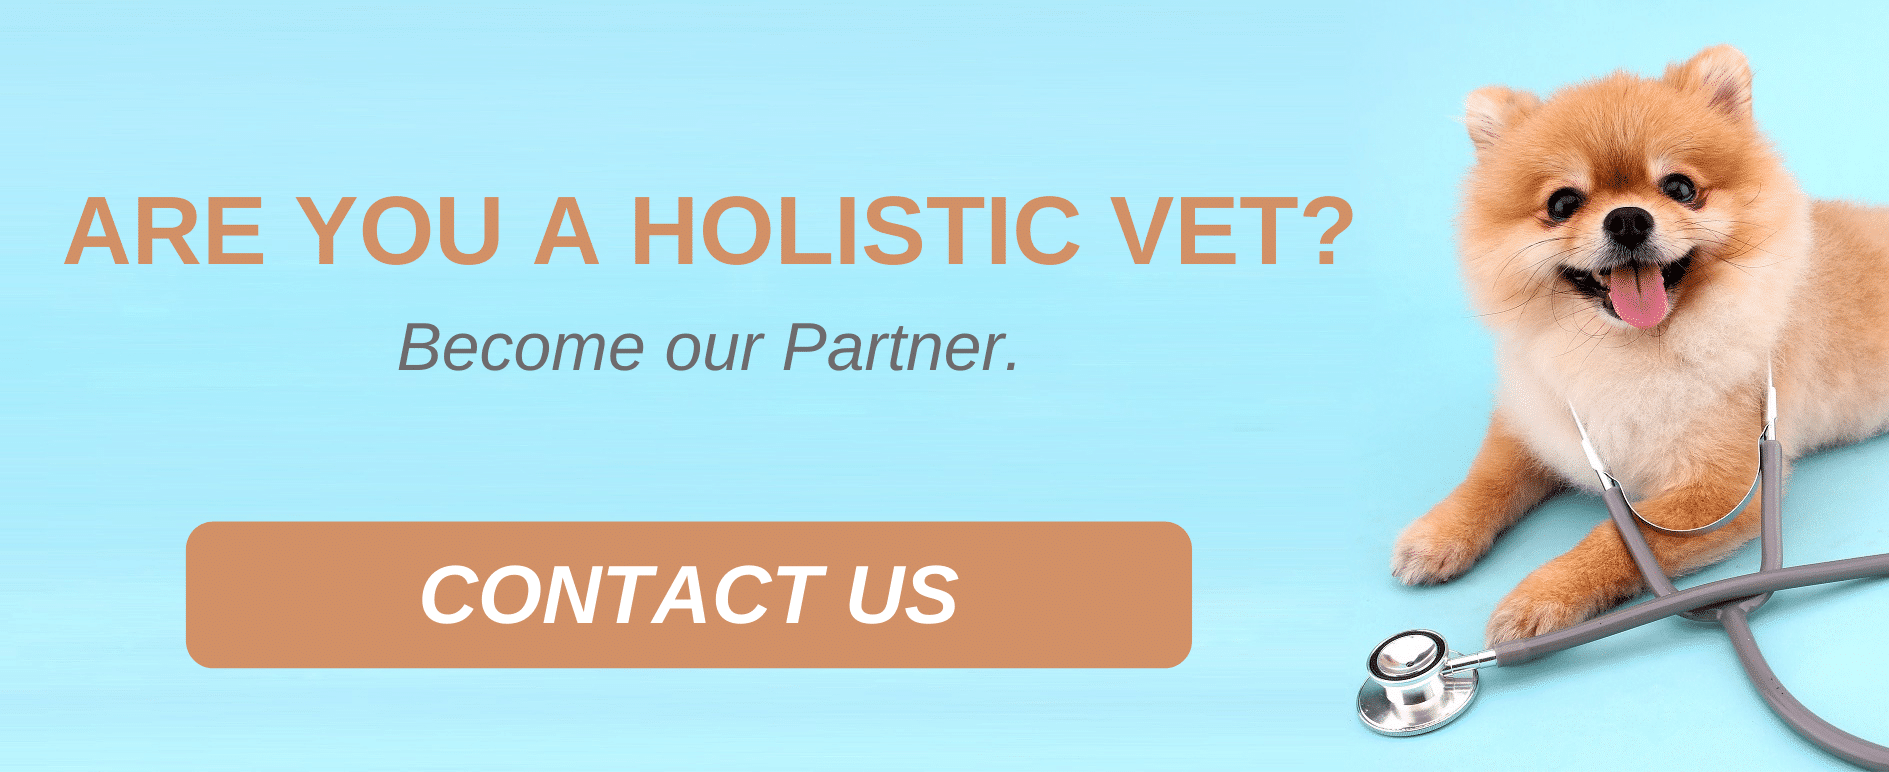 ARE YOU A HOLISTIC VET_ Become our Partner.